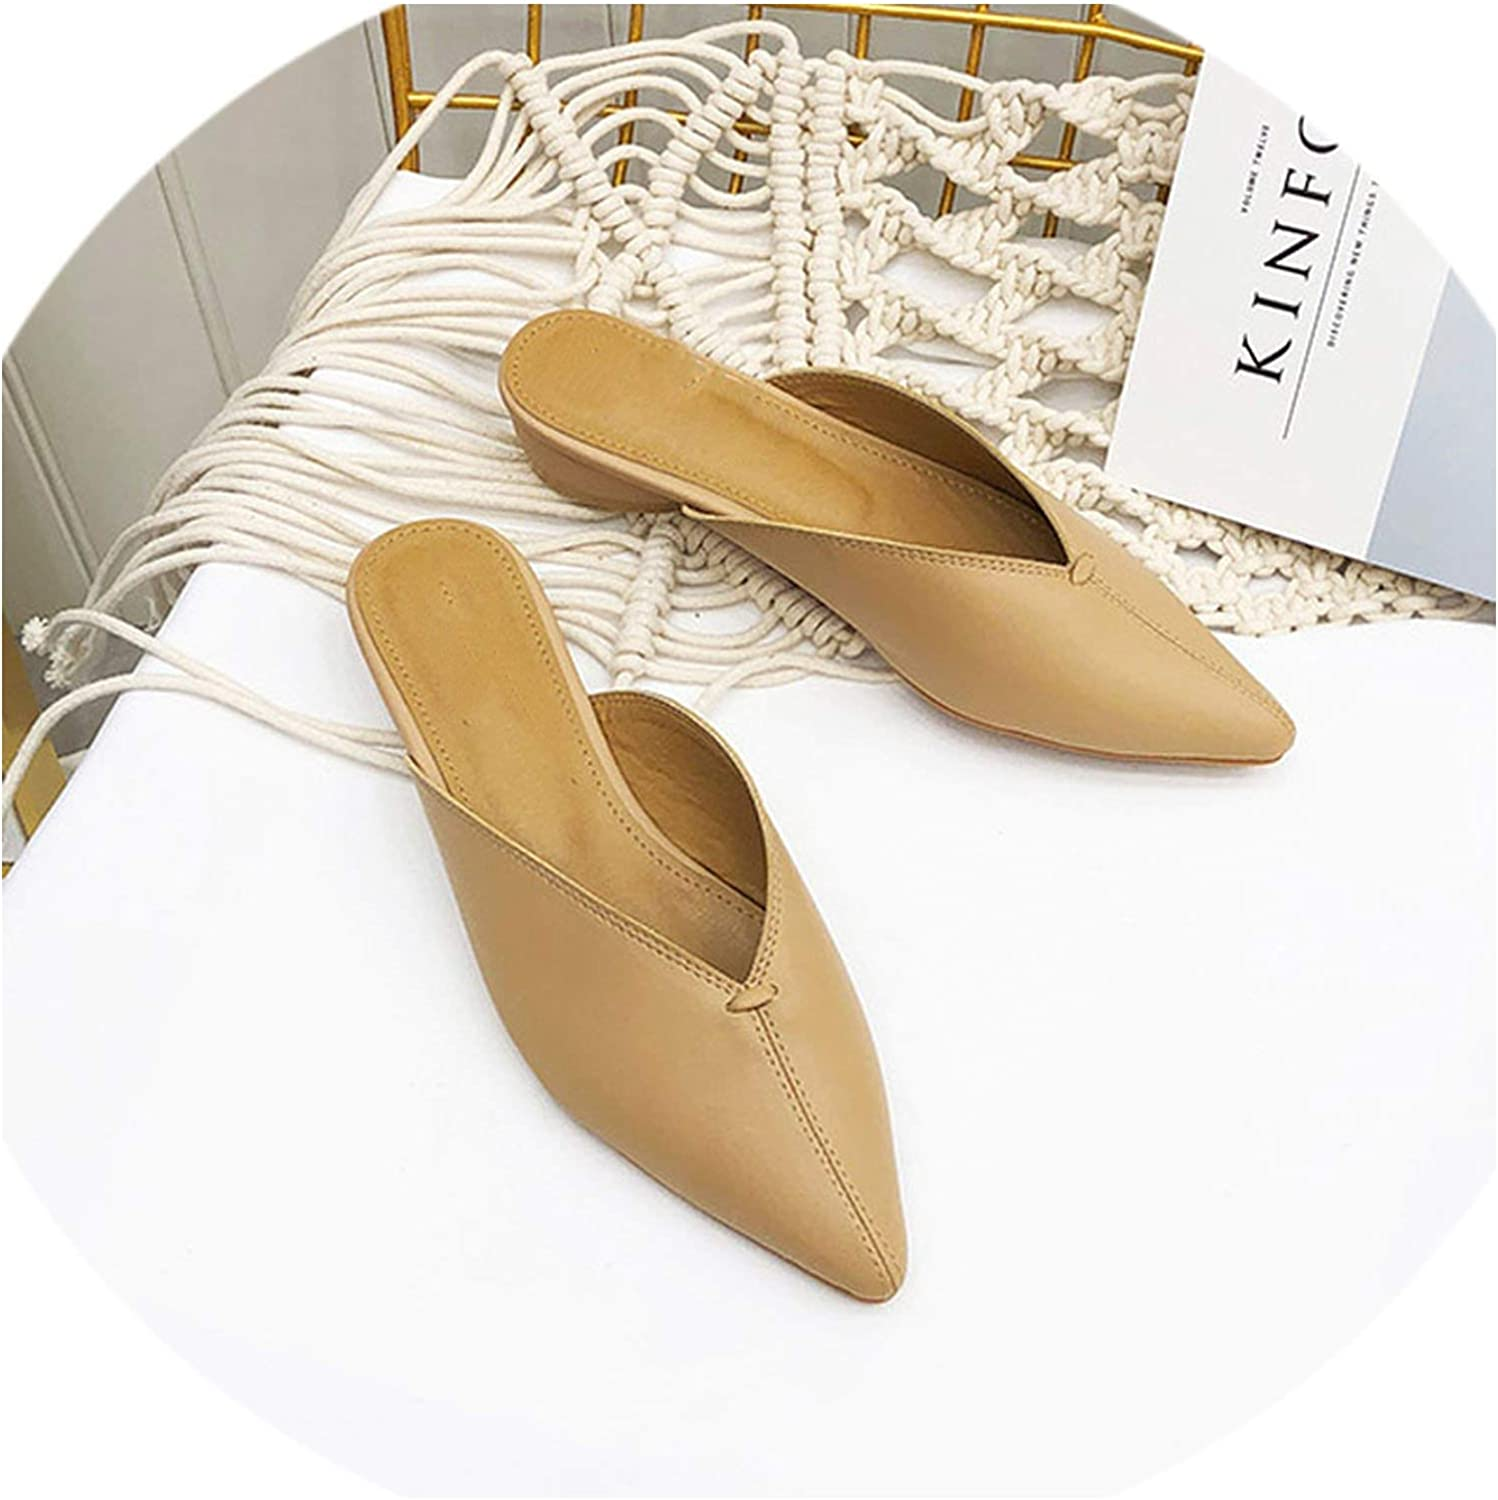 Sewing Mules Woman Low Heels Slippers Casual Pointed Toe Slides